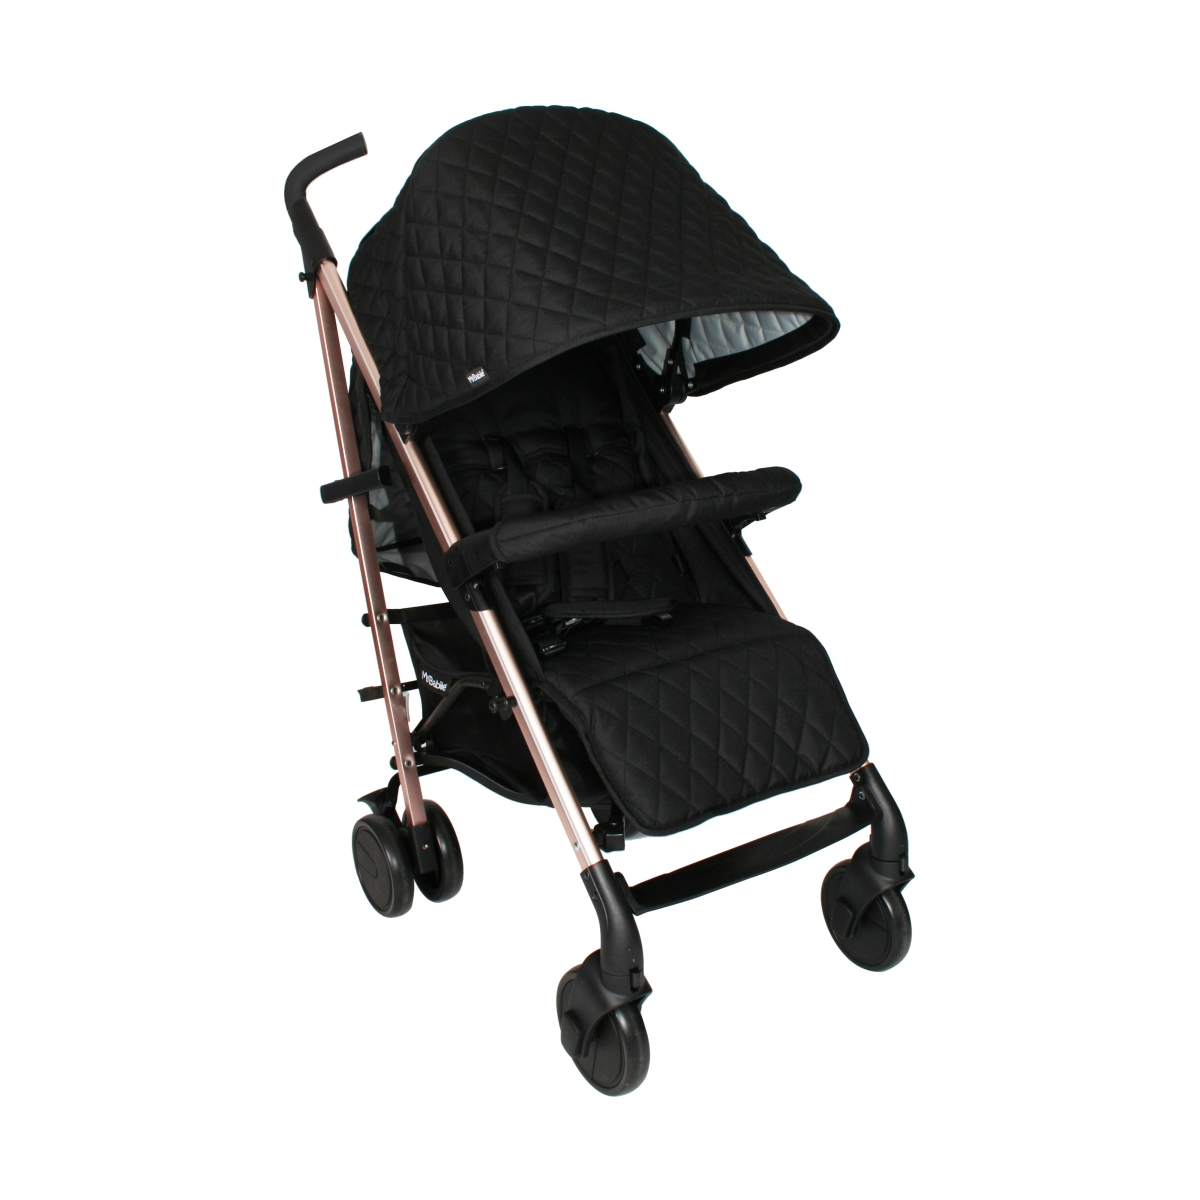 My Babiie Billie Faiers MB51 Rose Gold Black Quilted Stroller (MB51QG)